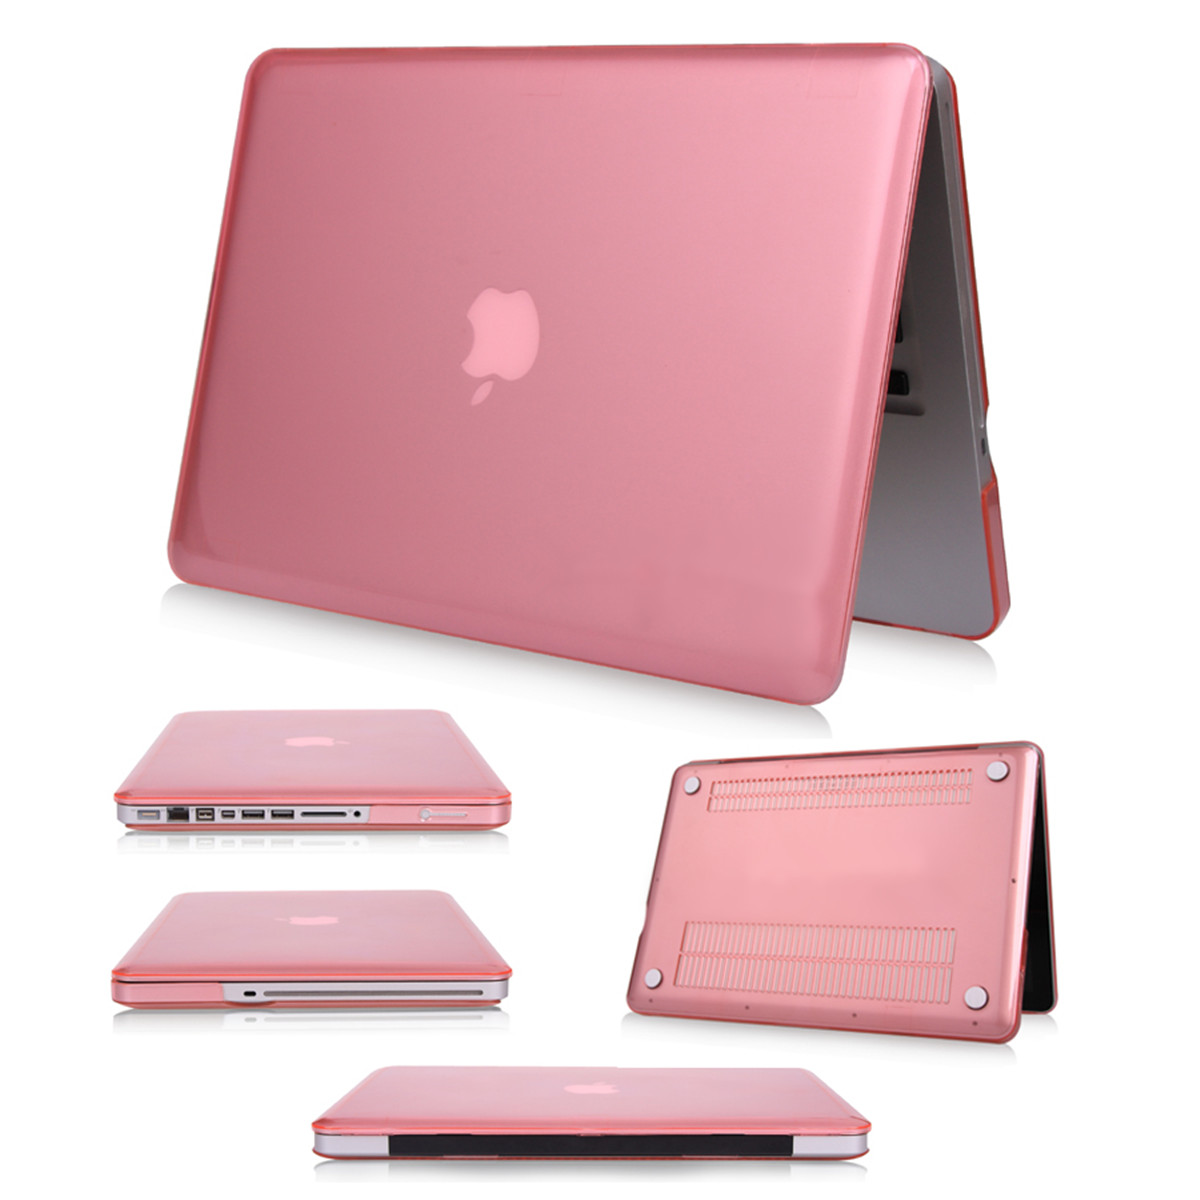 Crystal brillant transparent rigide coque etui housse pour for Housse macbook 12